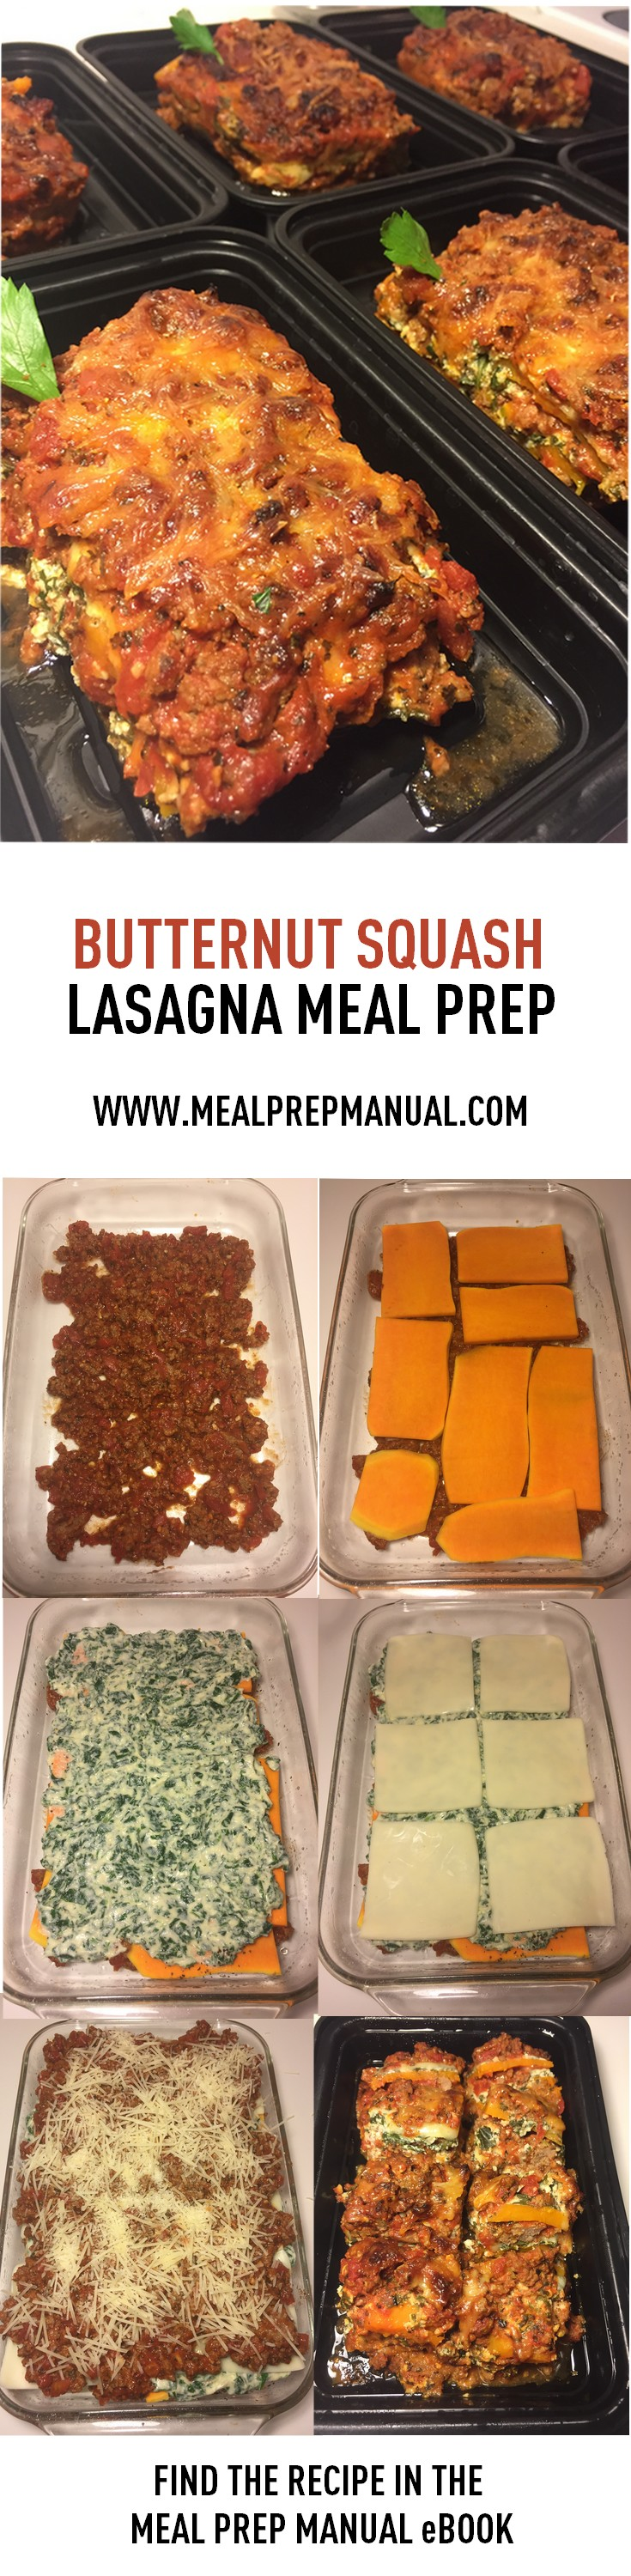 Download the meal prep manual ebook today meal prep recipes download the meal prep manual ebook today forumfinder Choice Image